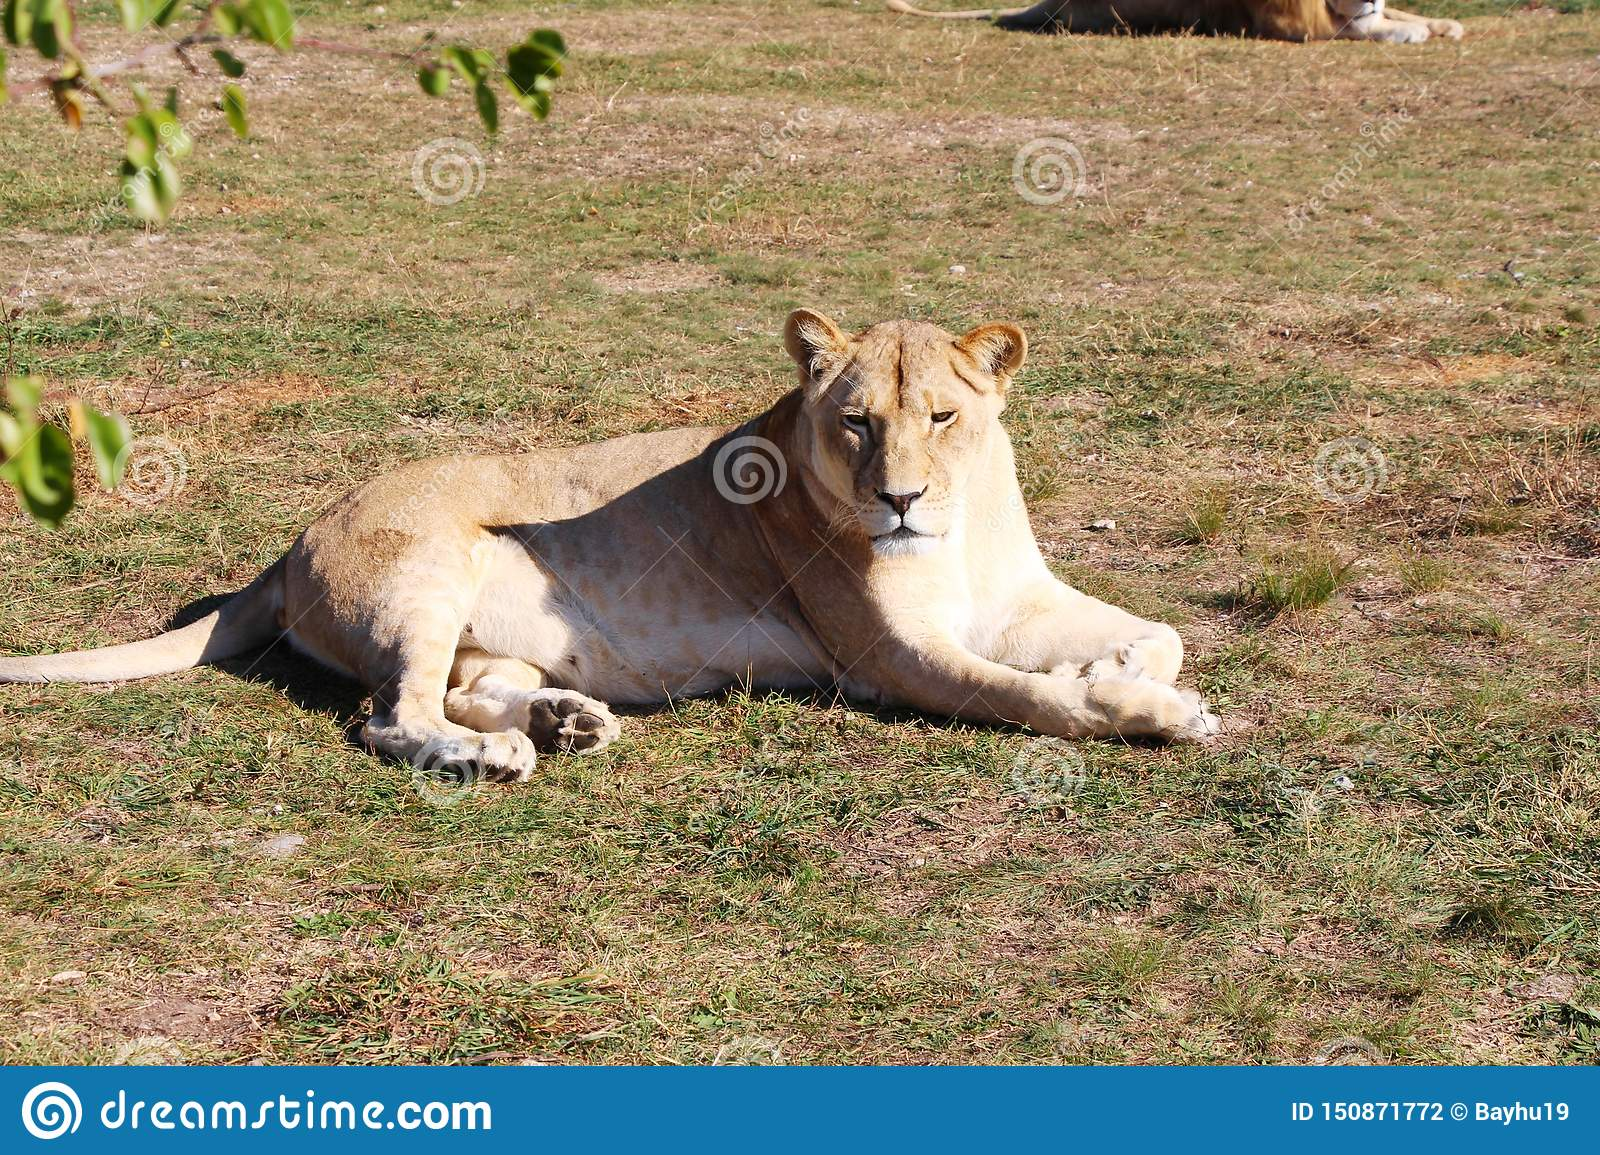 Lioness lies and rests on the ground